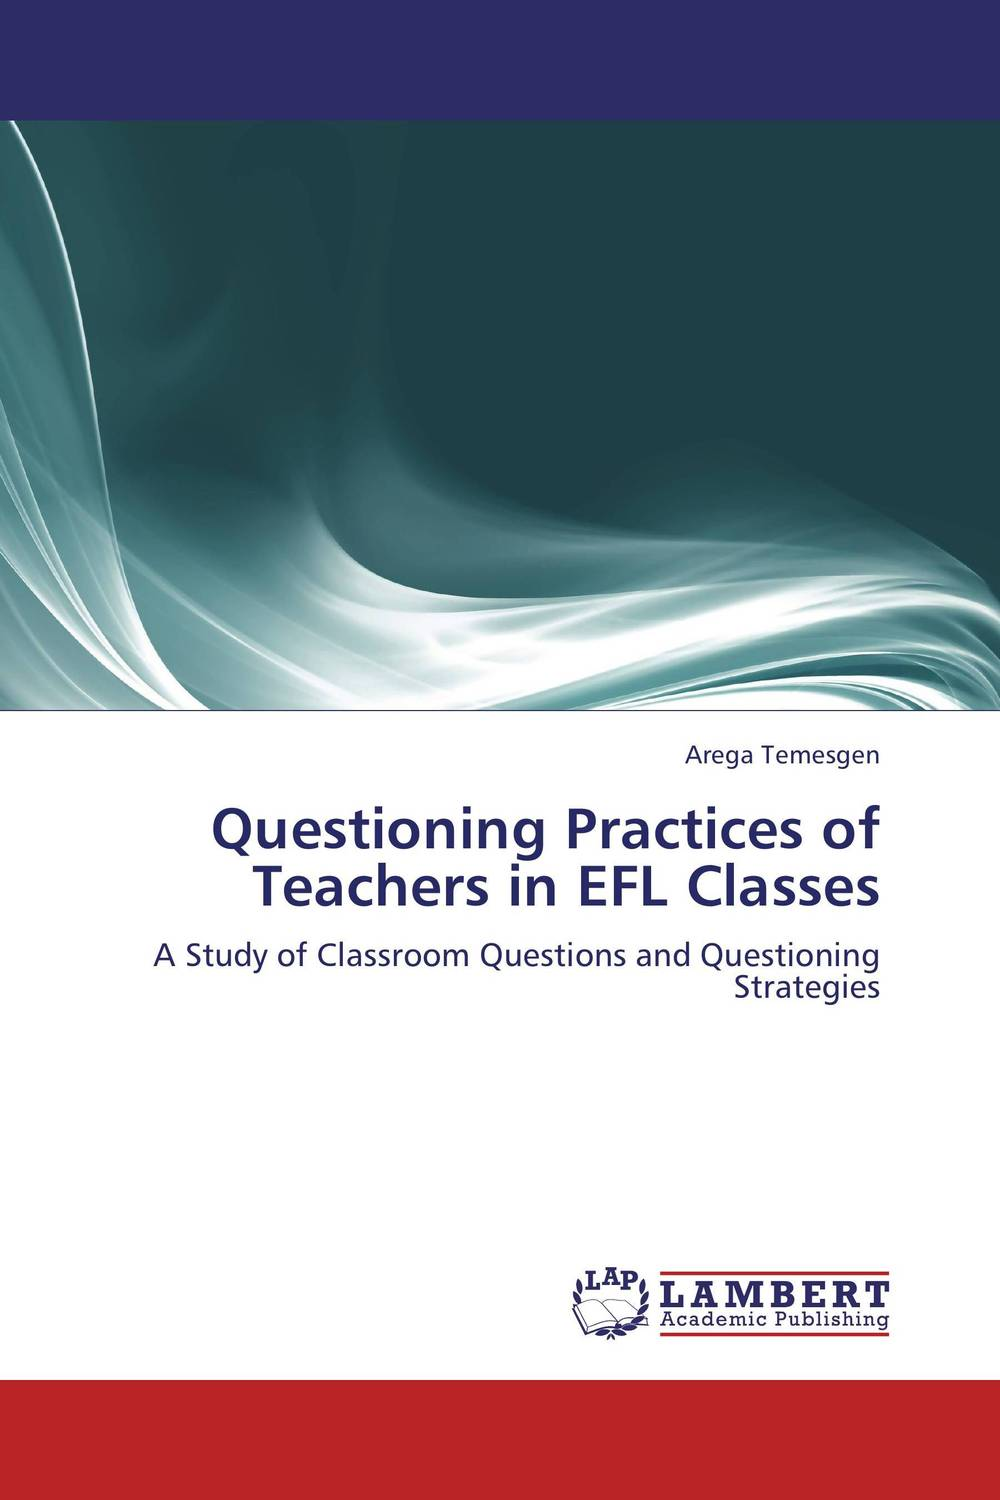 Questioning Practices of Teachers in EFL Classes ram charan owning up the 14 questions every board member needs to ask